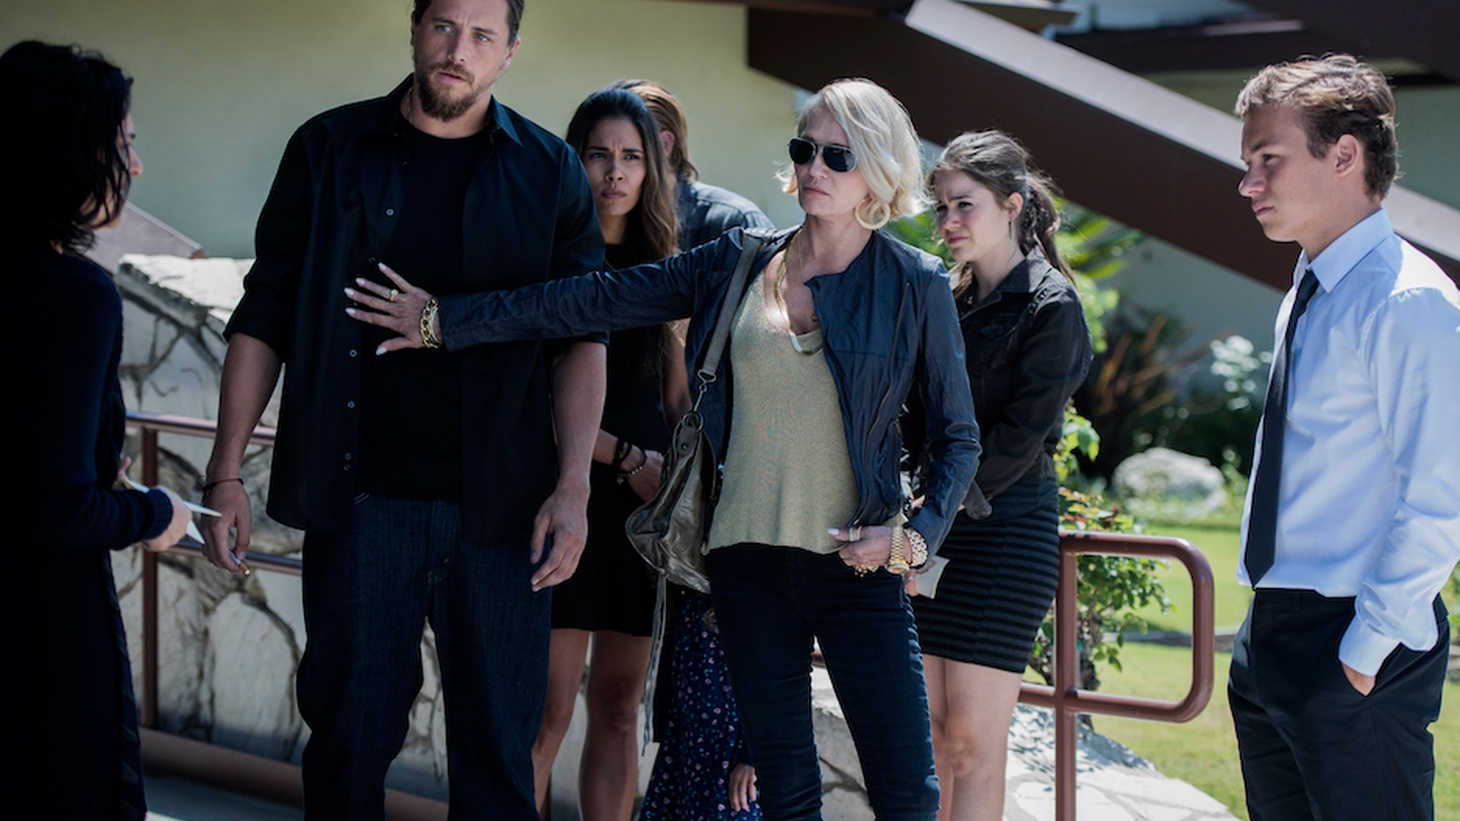 Hollywood's heading to the edges of California urban areas for a grittier slice of life in the Golden State. Joe Mathews says the latest example is Animal Kingdom, a new TV show starring Ellen Barkin as the matriarch of a mob family that takes place in the San Diego exurbs.